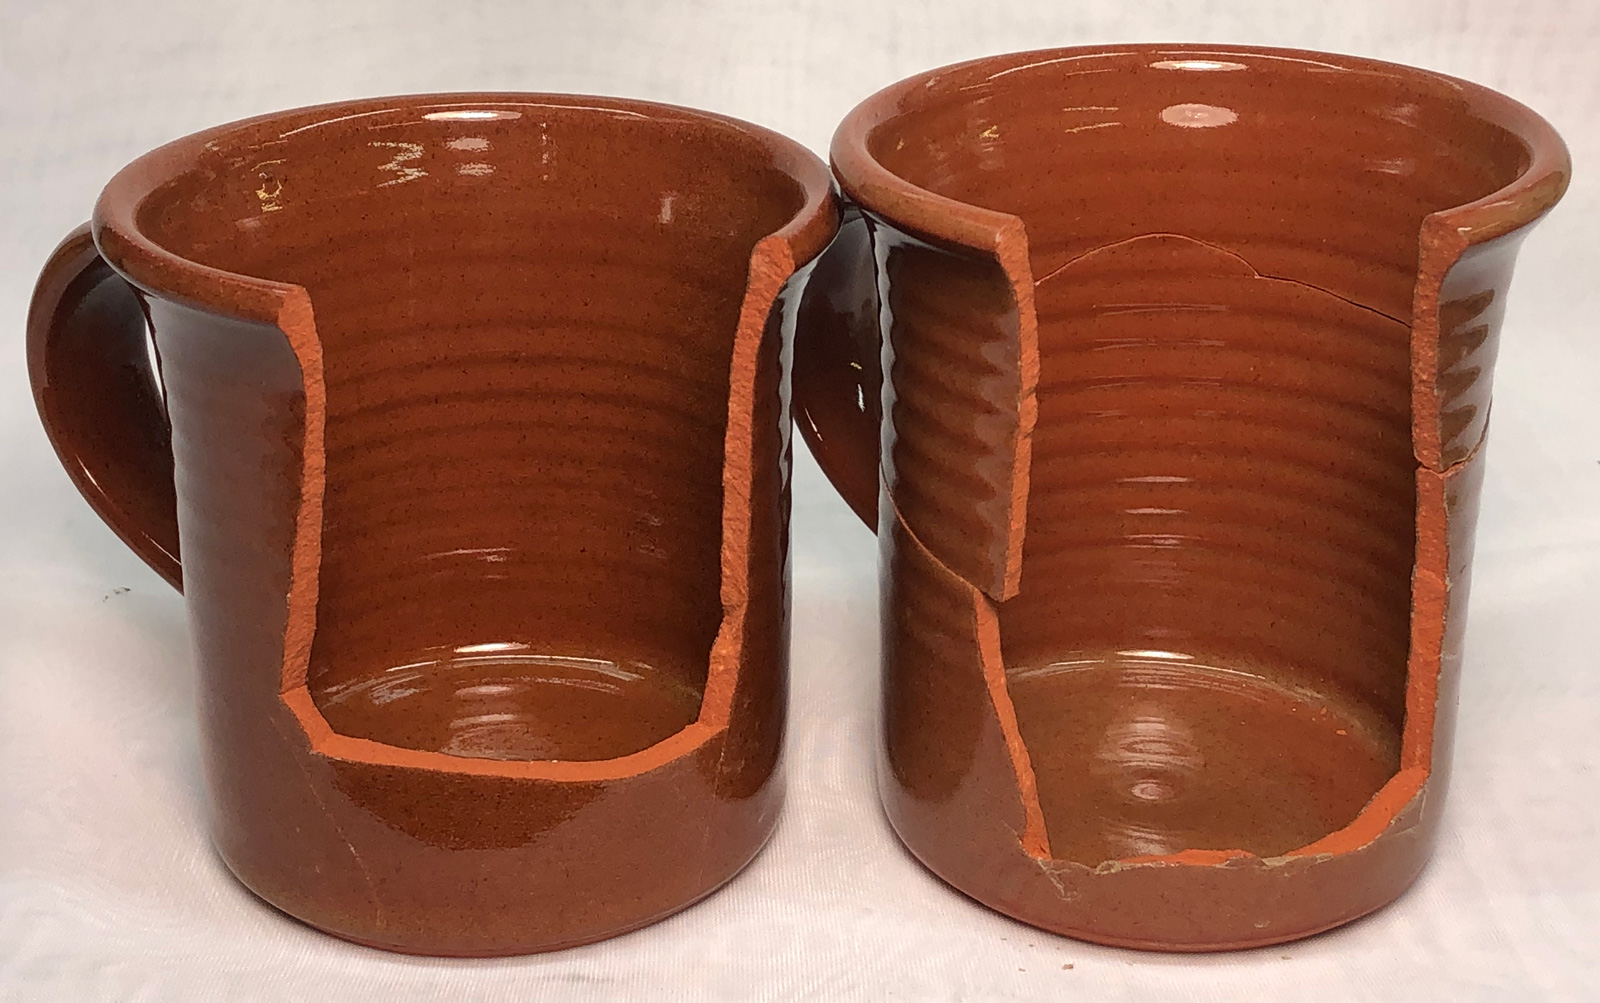 Two clear glazed terra cotta mugs